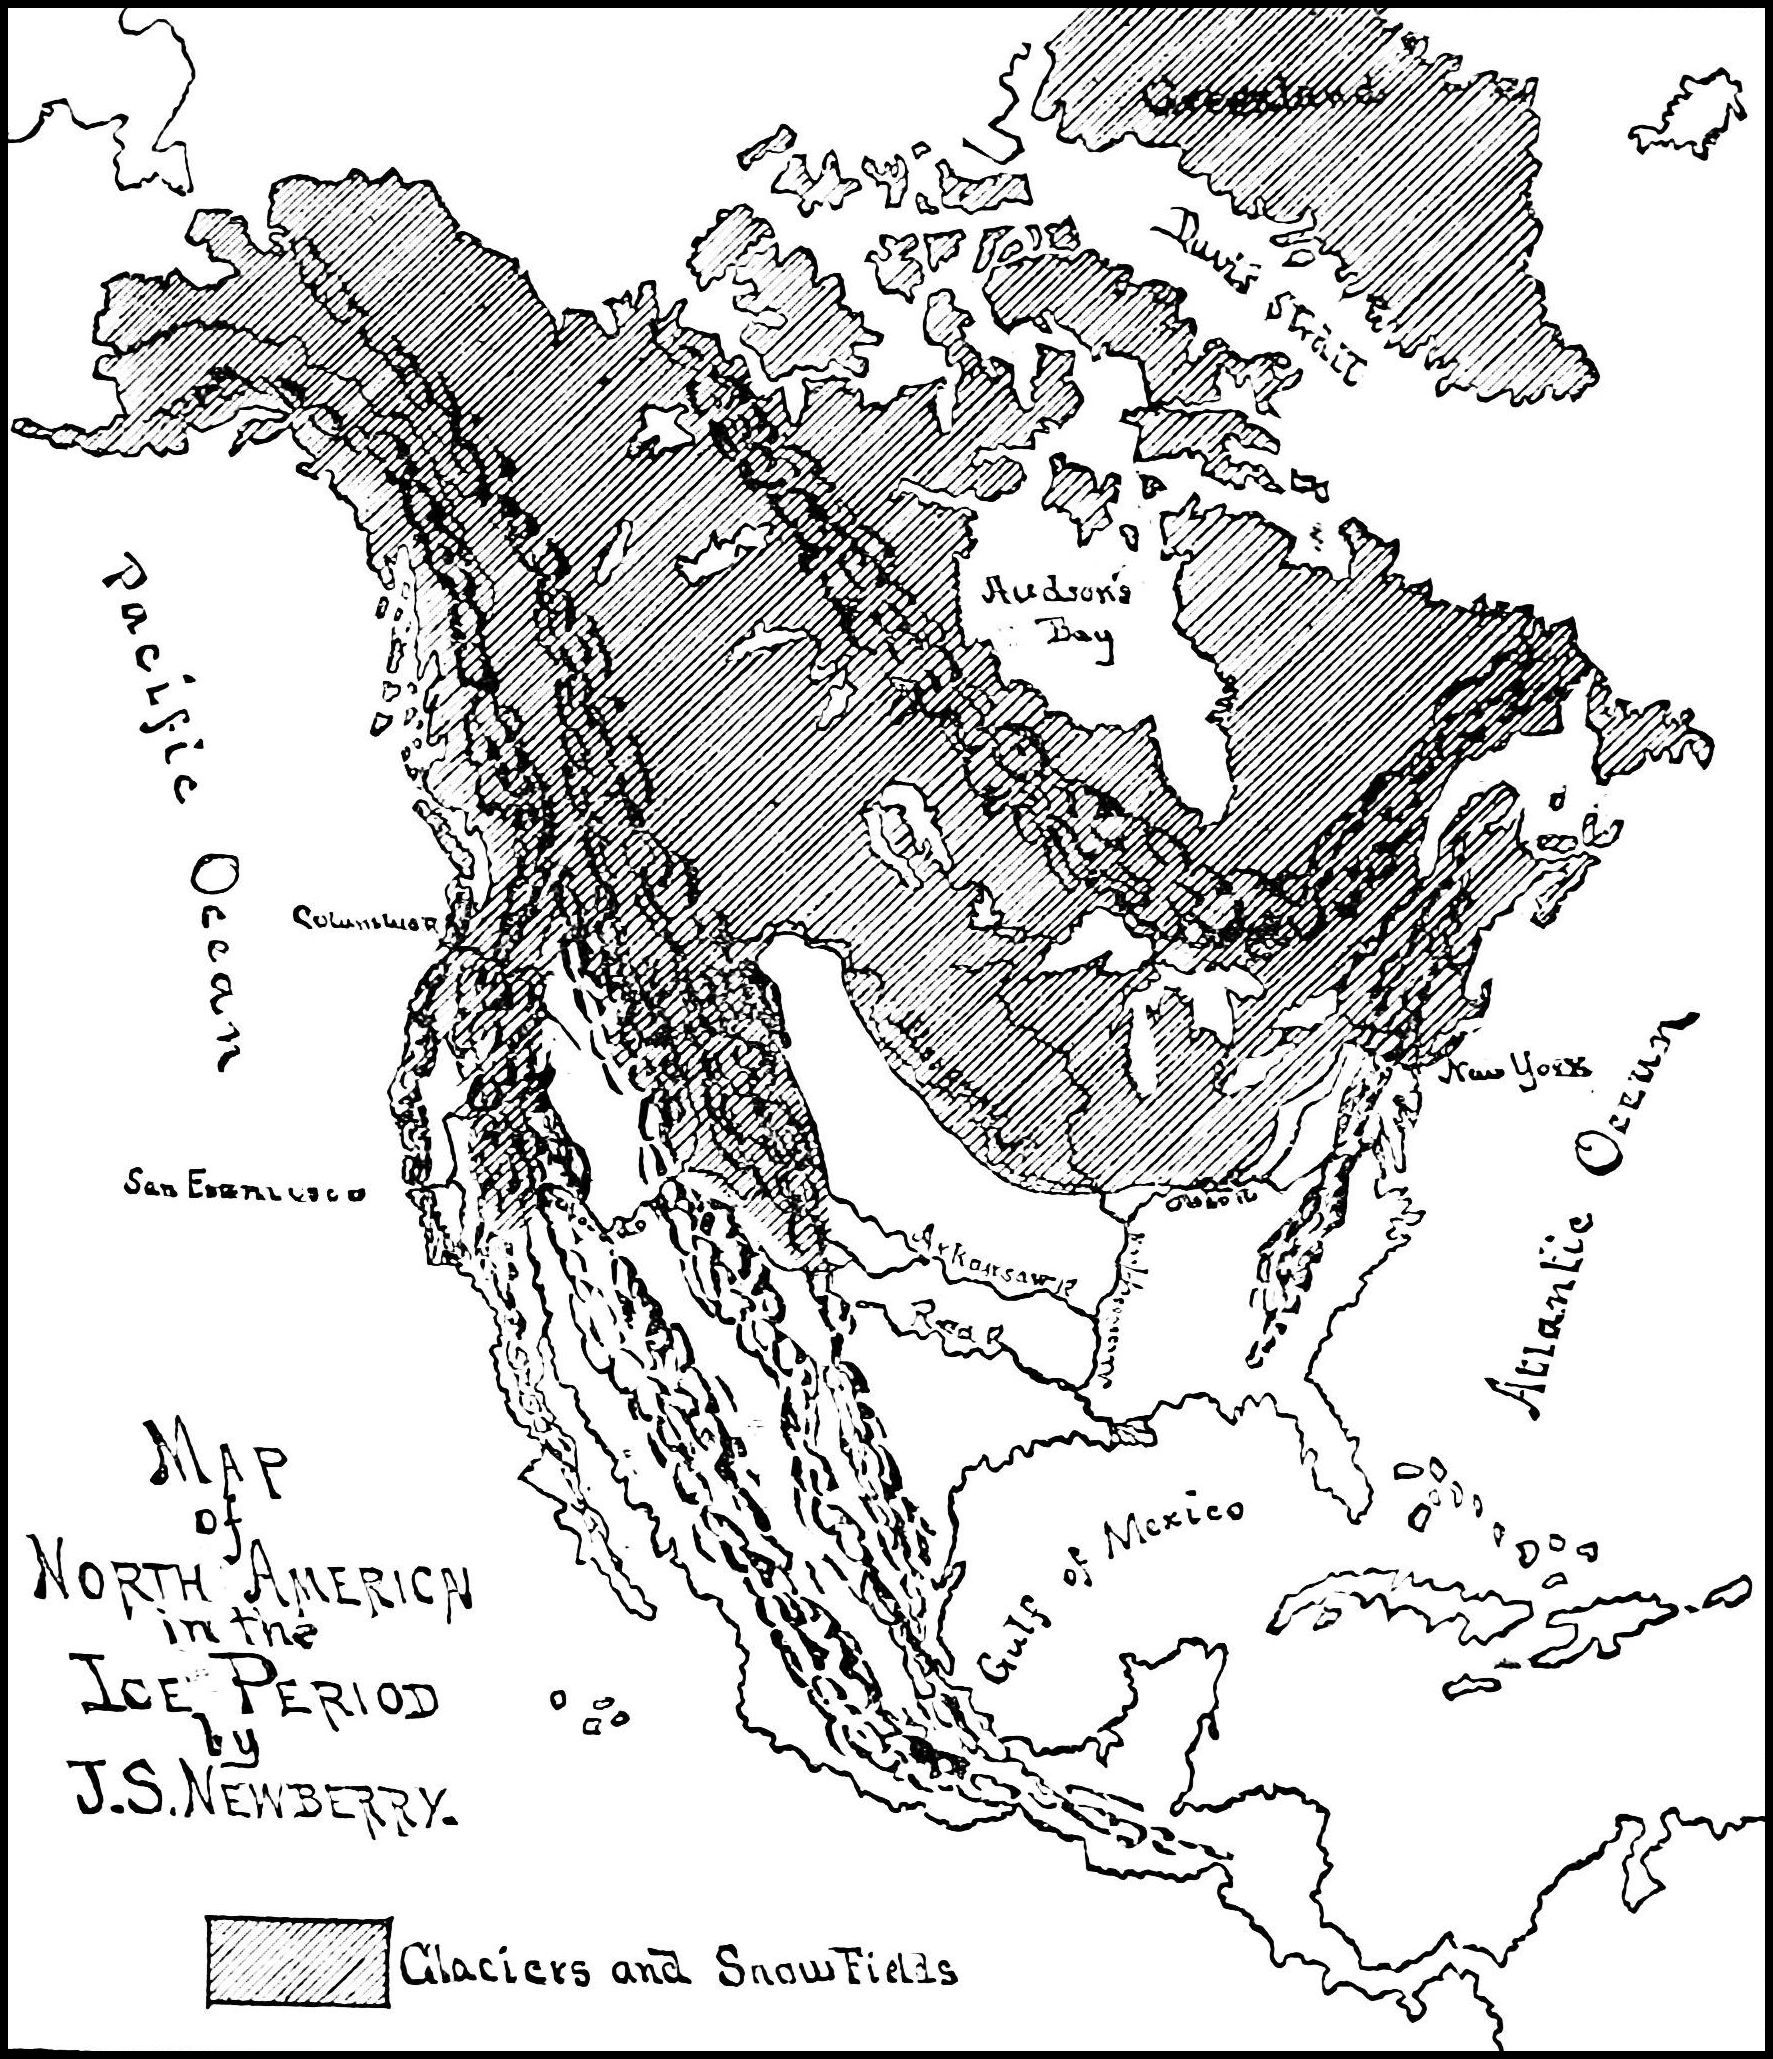 File:PSM V30 D013 Map of north america during the ice age